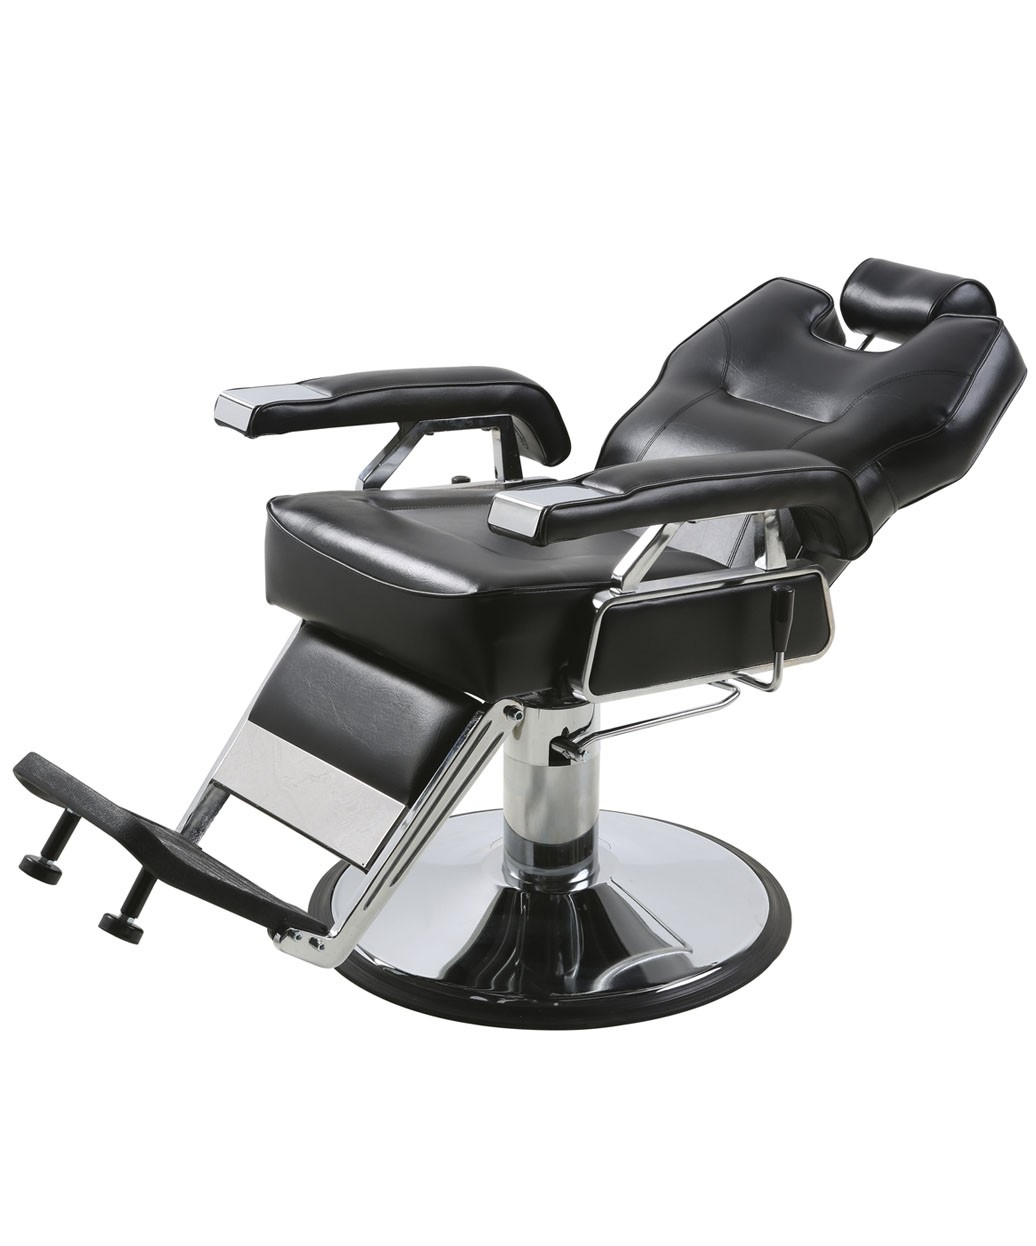 Sturdy Barber Chair Stainless Steel Metal Rotate Lift Beauty Stools Acrylic Nail Embroidery Chairs With Rollers Outstanding Features Commercial Furniture Salon Furniture